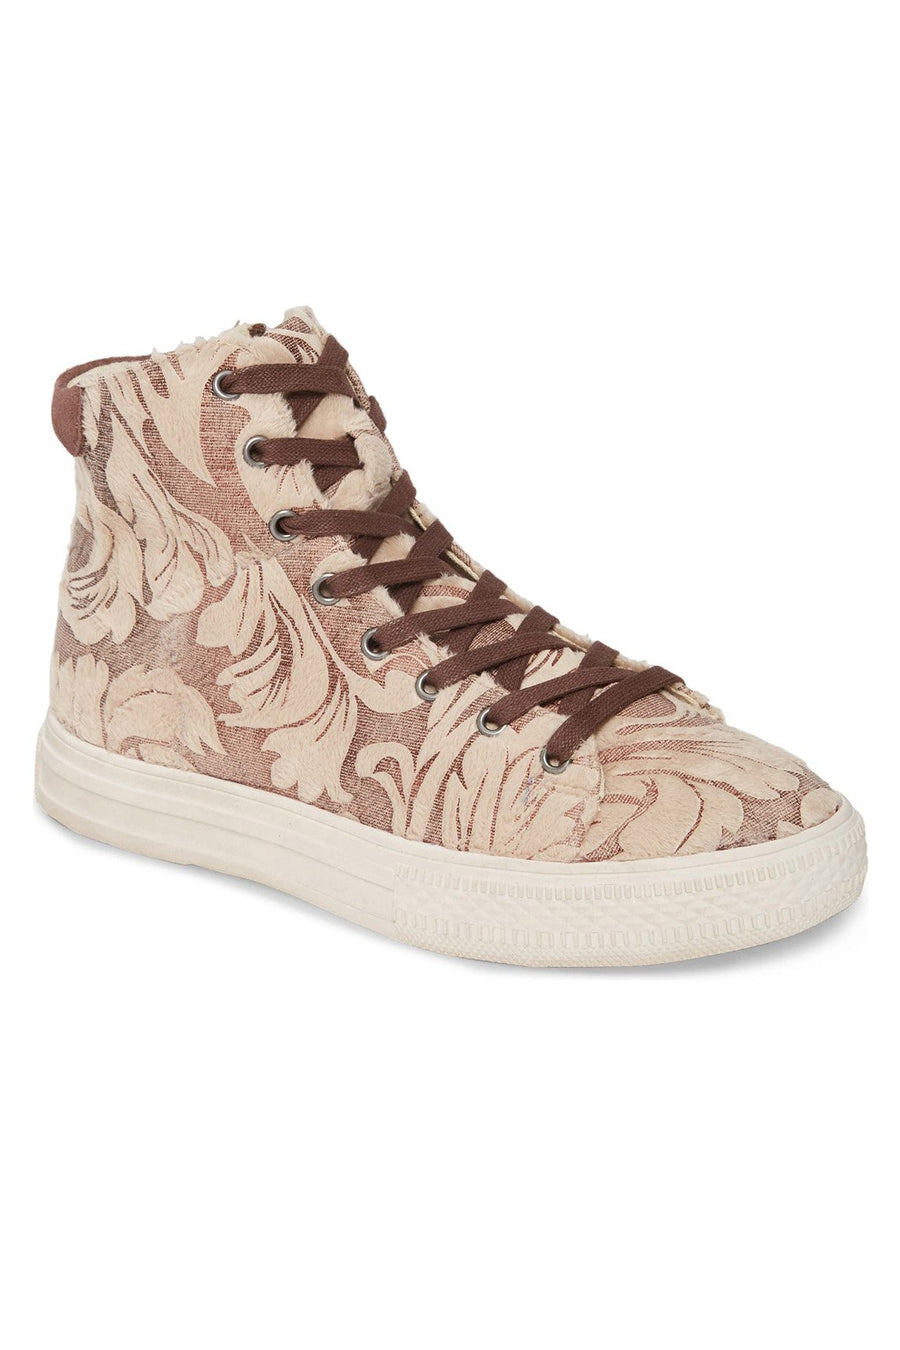 Eagle Faux Fur Damask Beige High Top Sneaker